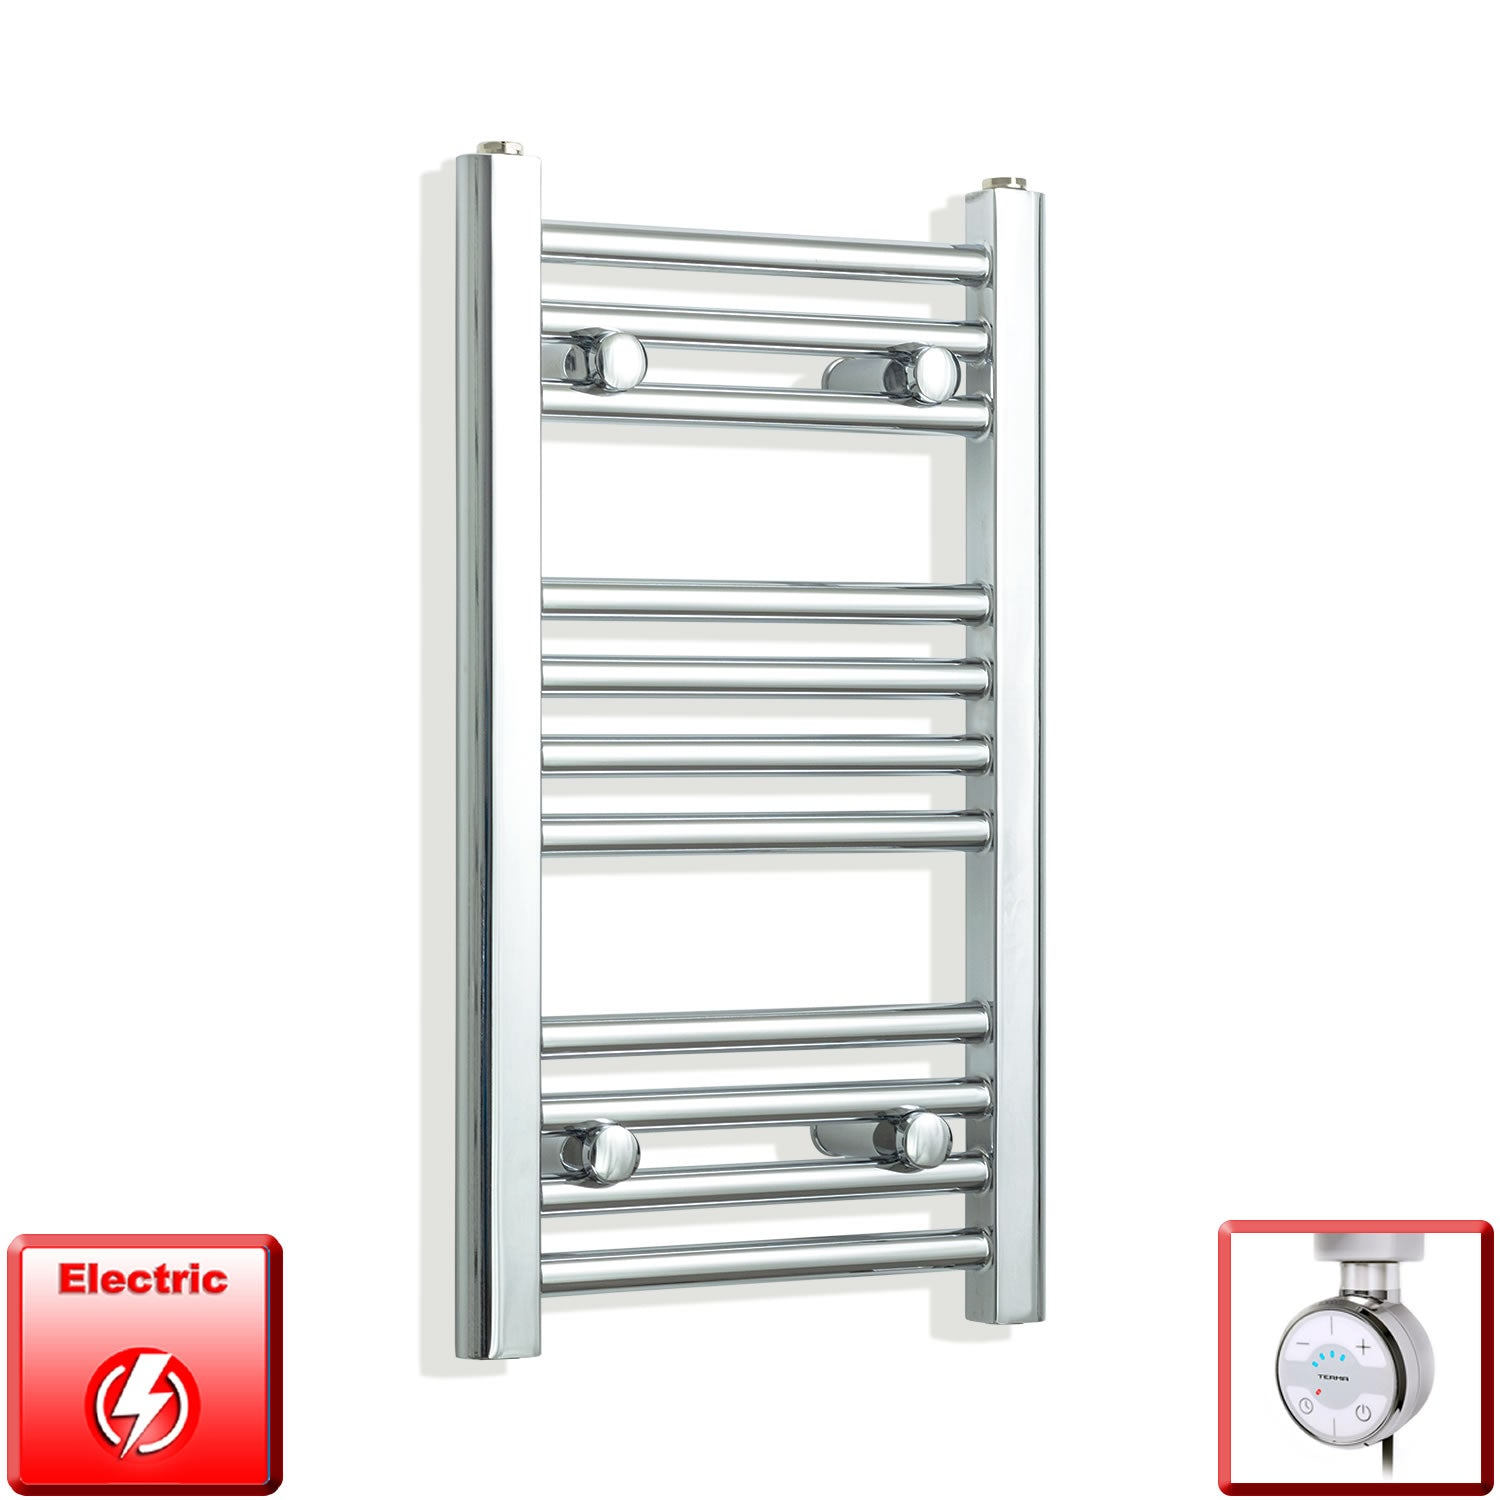 350mm Wide 600mm High Flat Chrome Pre-Filled Electric Heated Towel Rail Radiator HTR,MOA Thermostatic Element